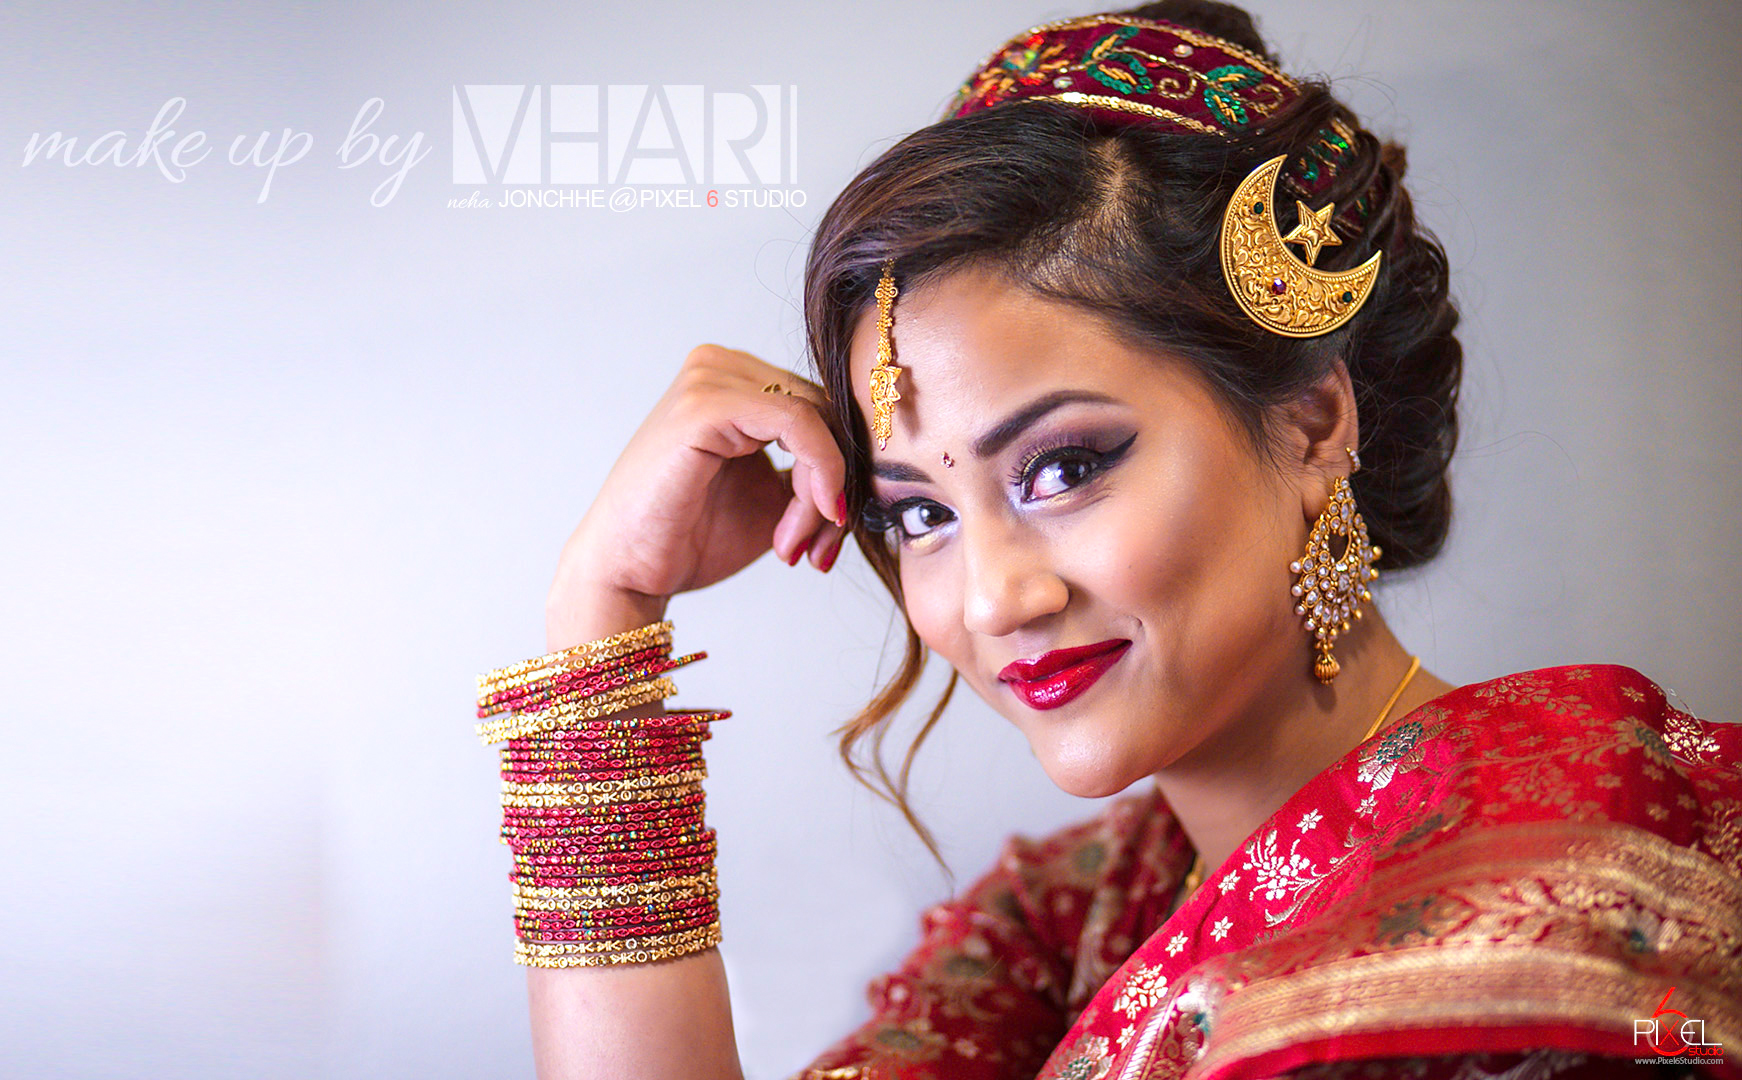 Bridal Session with Makeup by Vhari